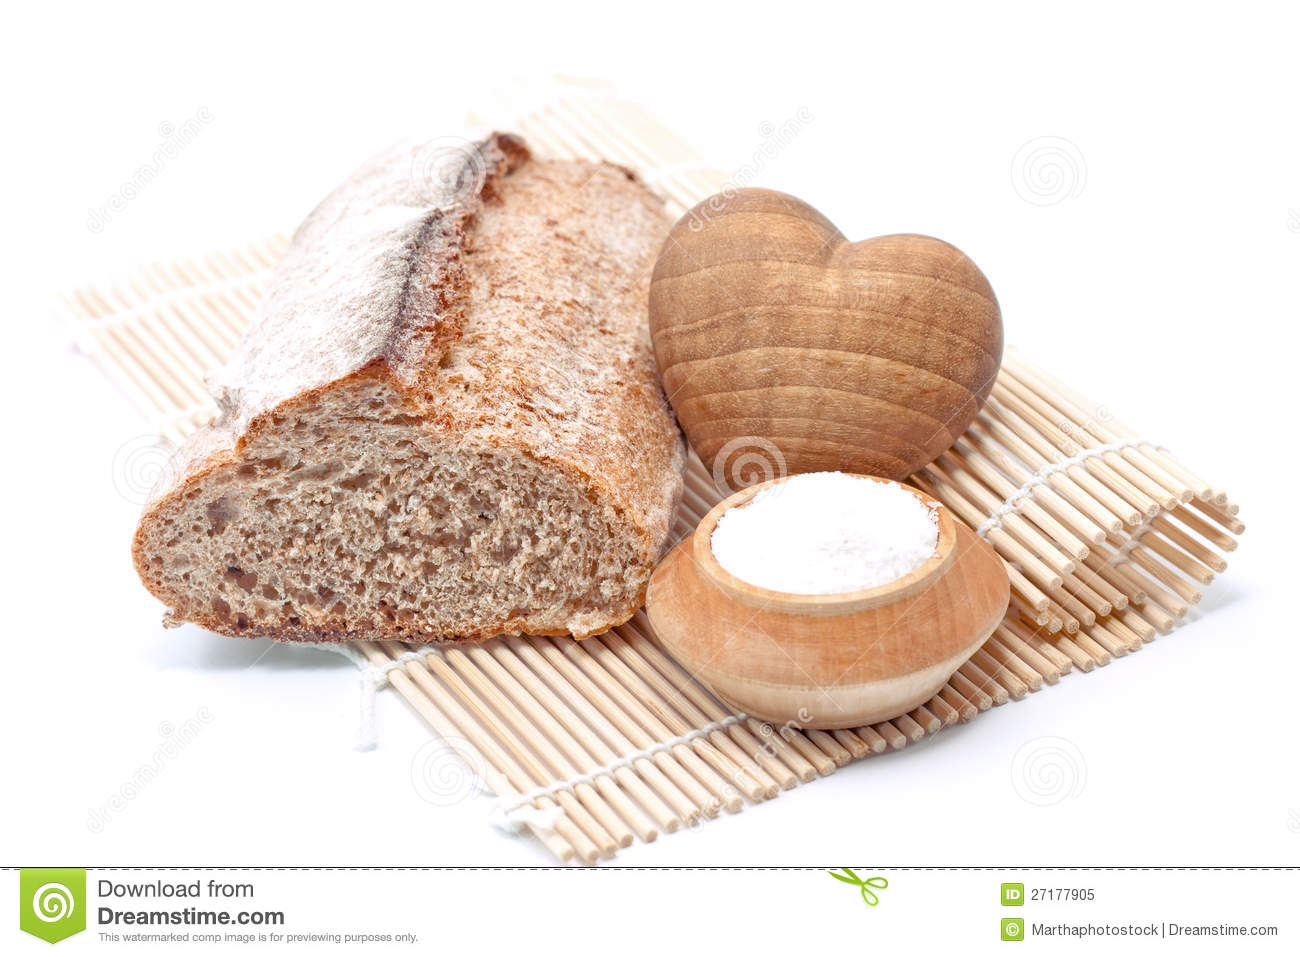 grandmother with fresh baked loaf of bread stock photo 31732584. Black Bedroom Furniture Sets. Home Design Ideas